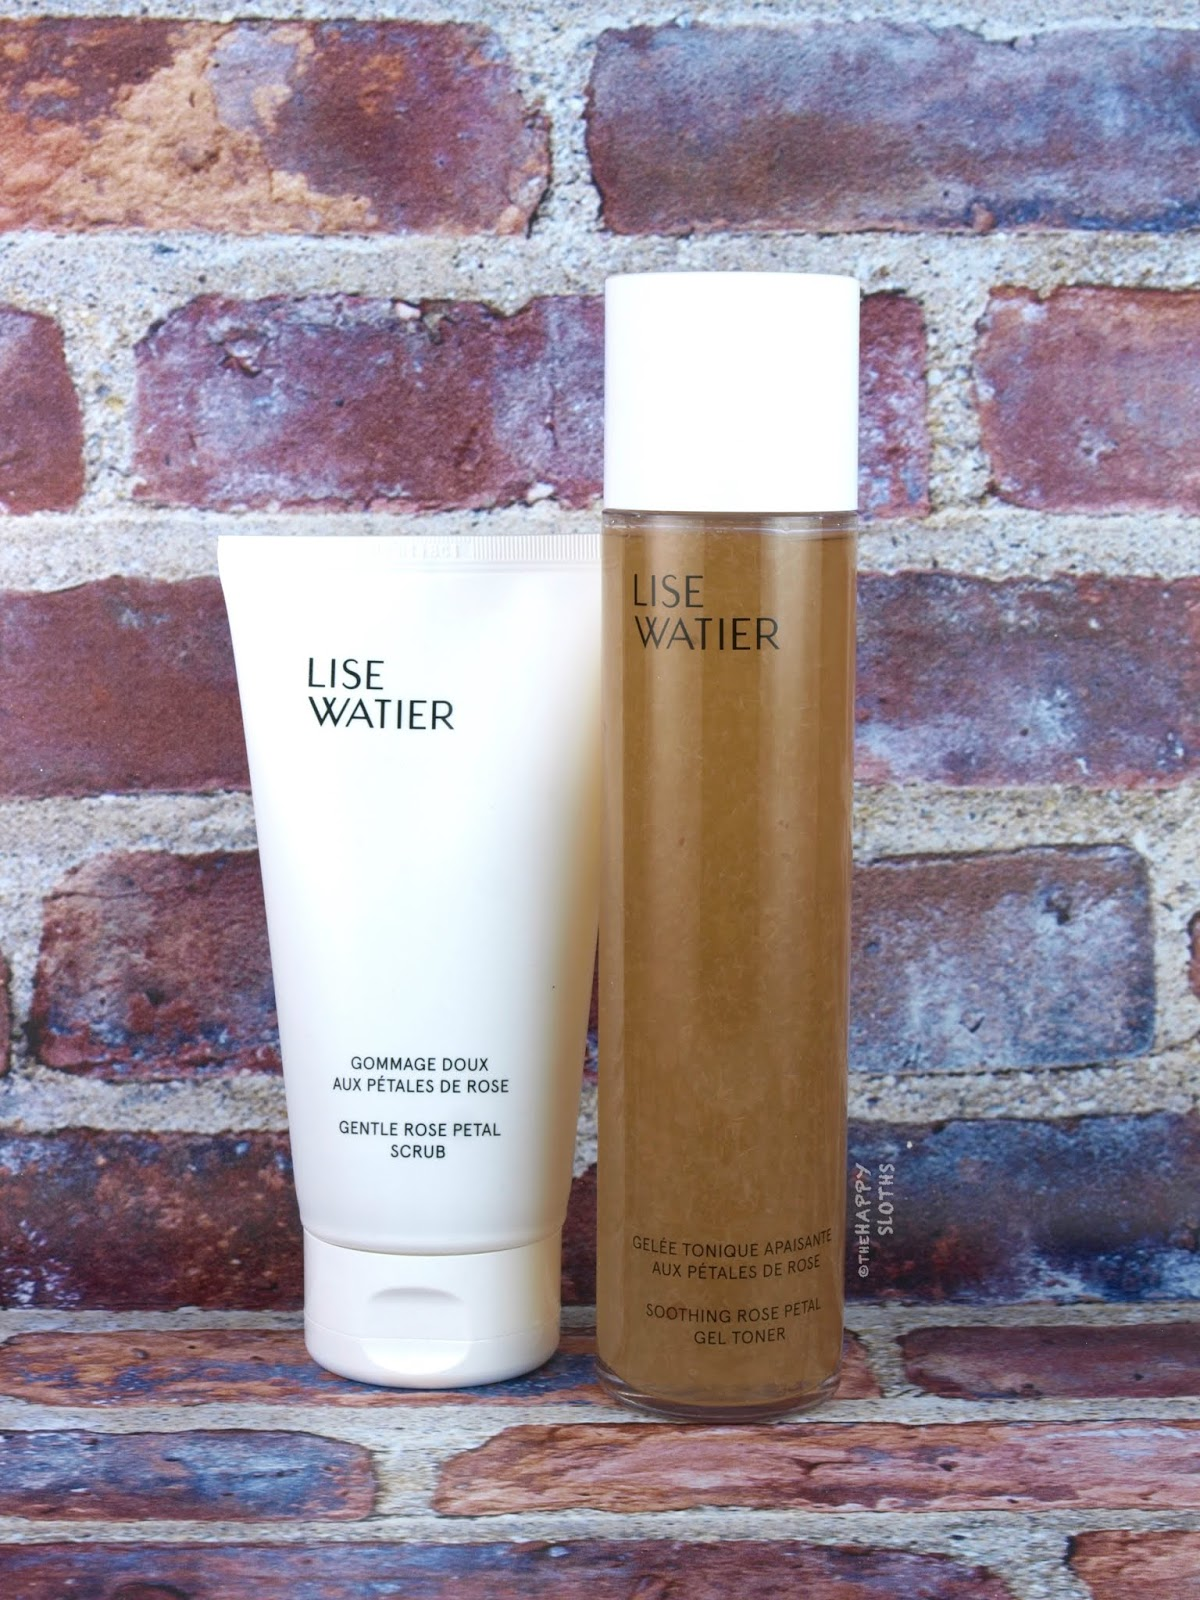 Lise Watier | Gentle Rose Petal Scrub & Soothing Rose Petal Toner: Review